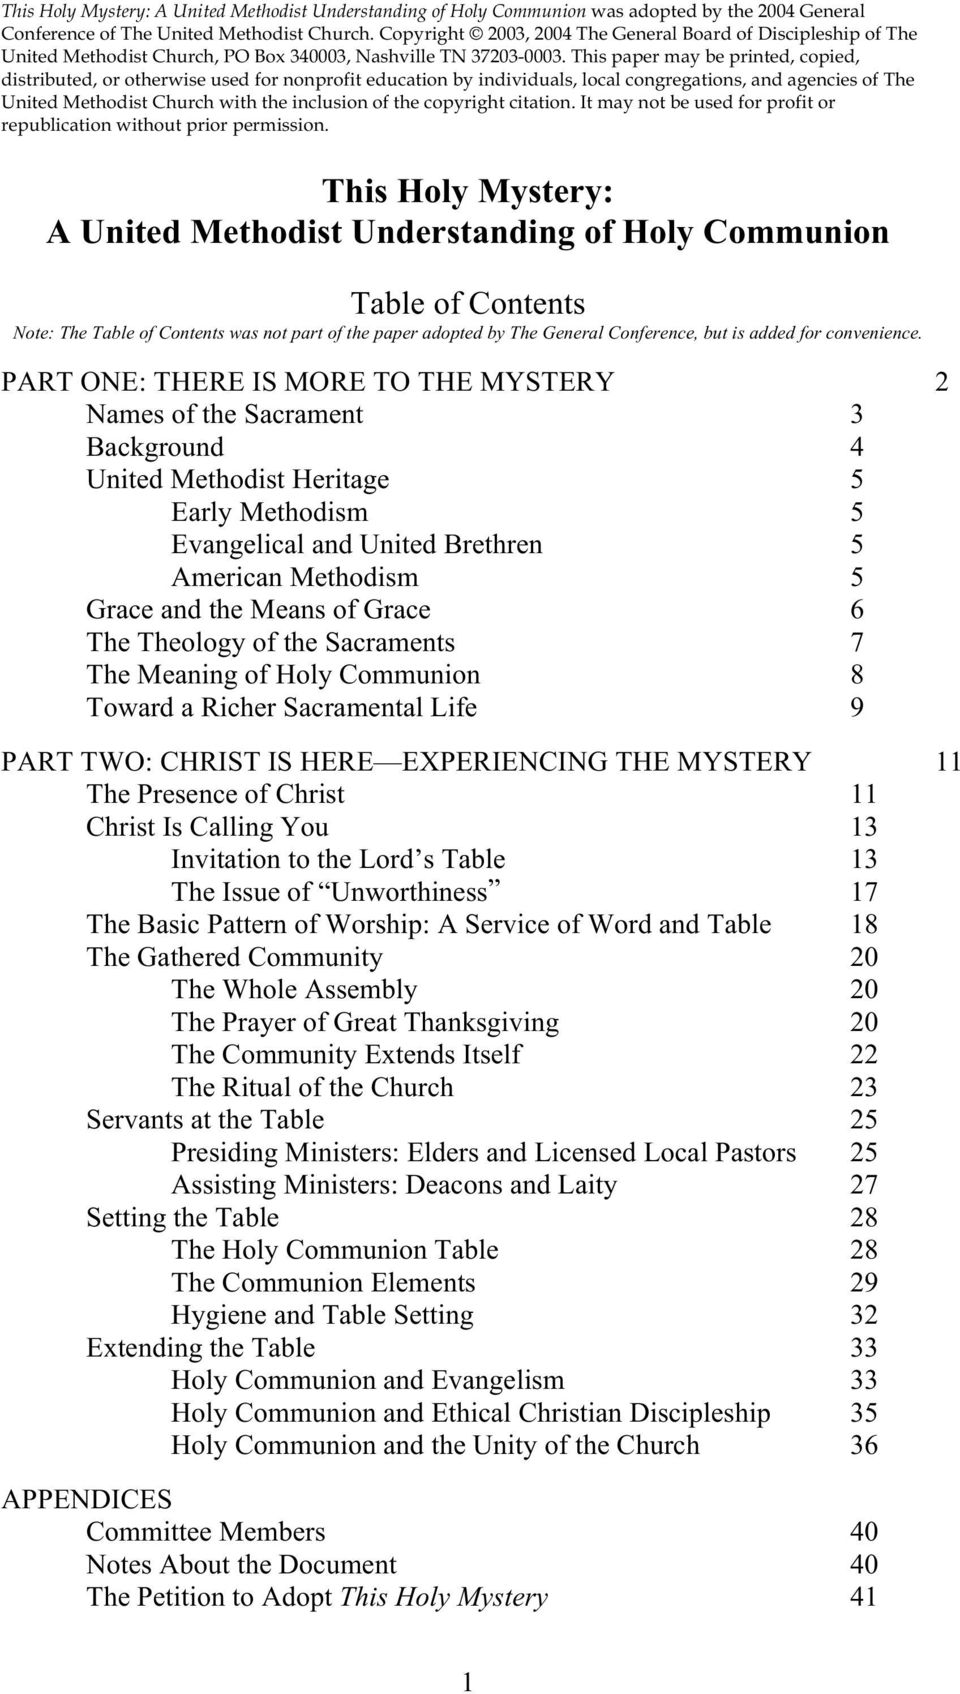 PART ONE: THERE IS MORE TO THE MYSTERY 2 Names of the Sacrament 3 Background 4 United Methodist Heritage 5 Early Methodism 5 Evangelical and United Brethren 5 American Methodism 5 Grace and the Means